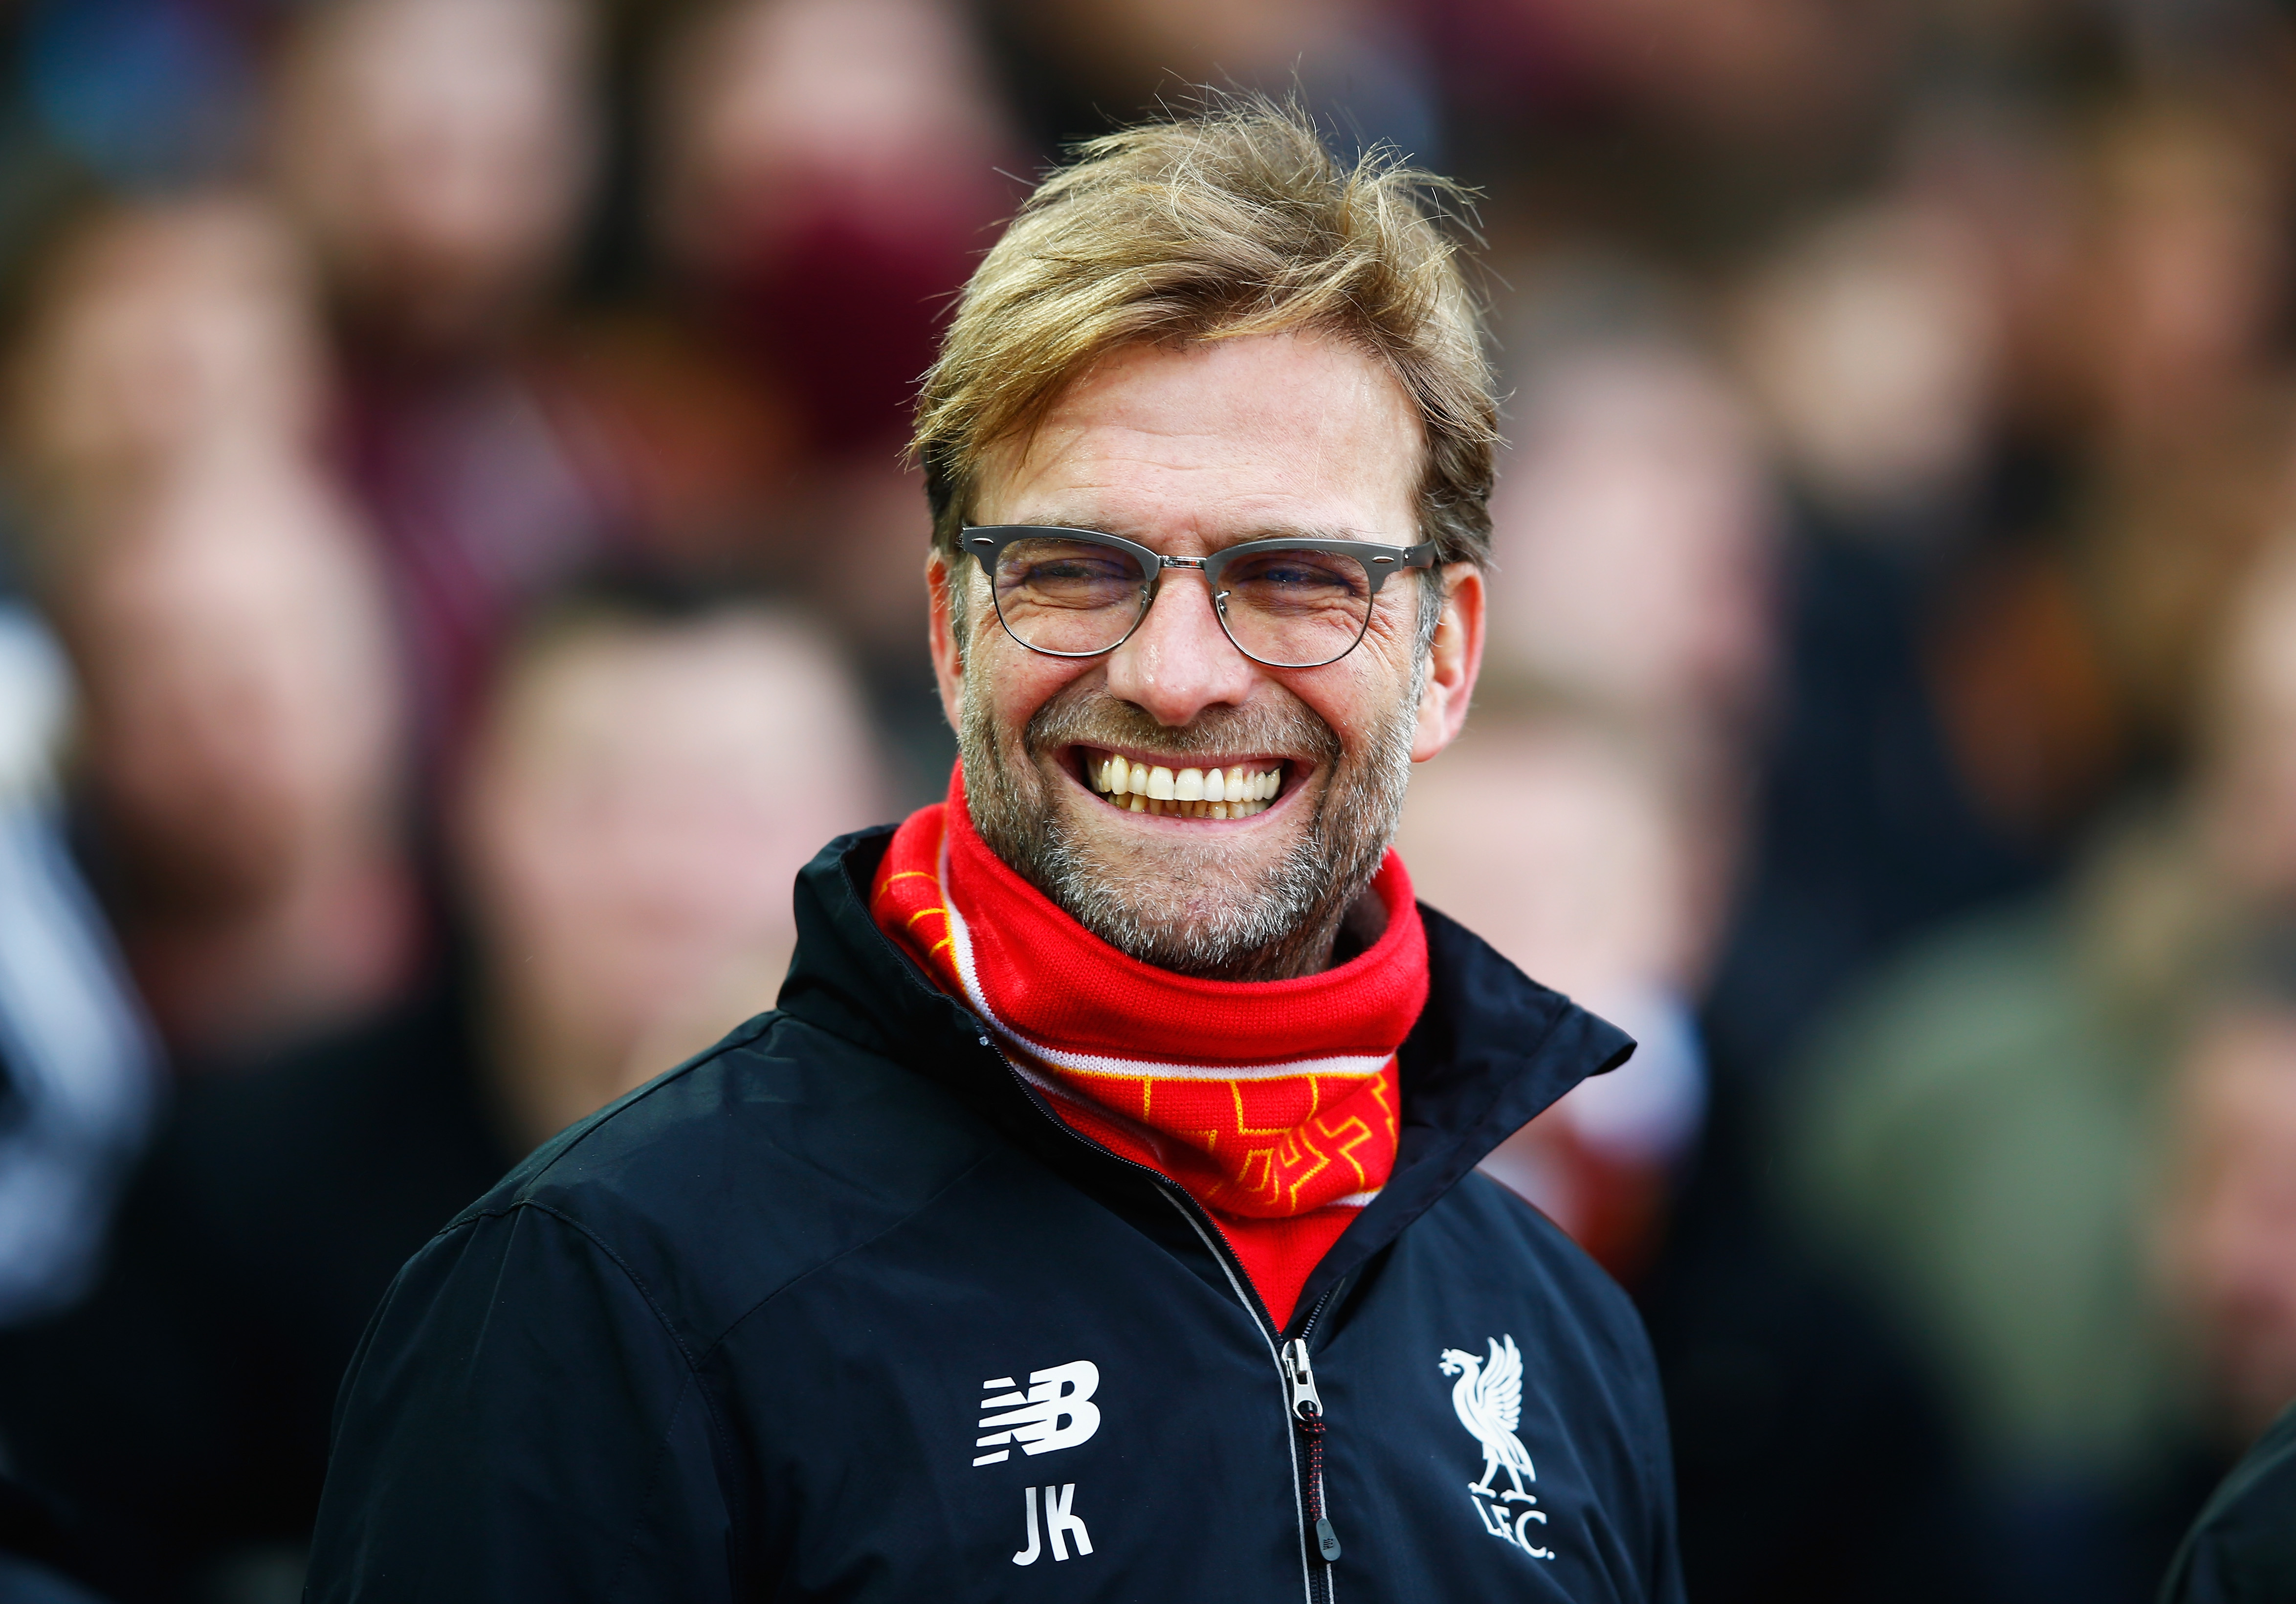 Liverpool allow defender Mamadou Sakho to join Crystal Palace on loan